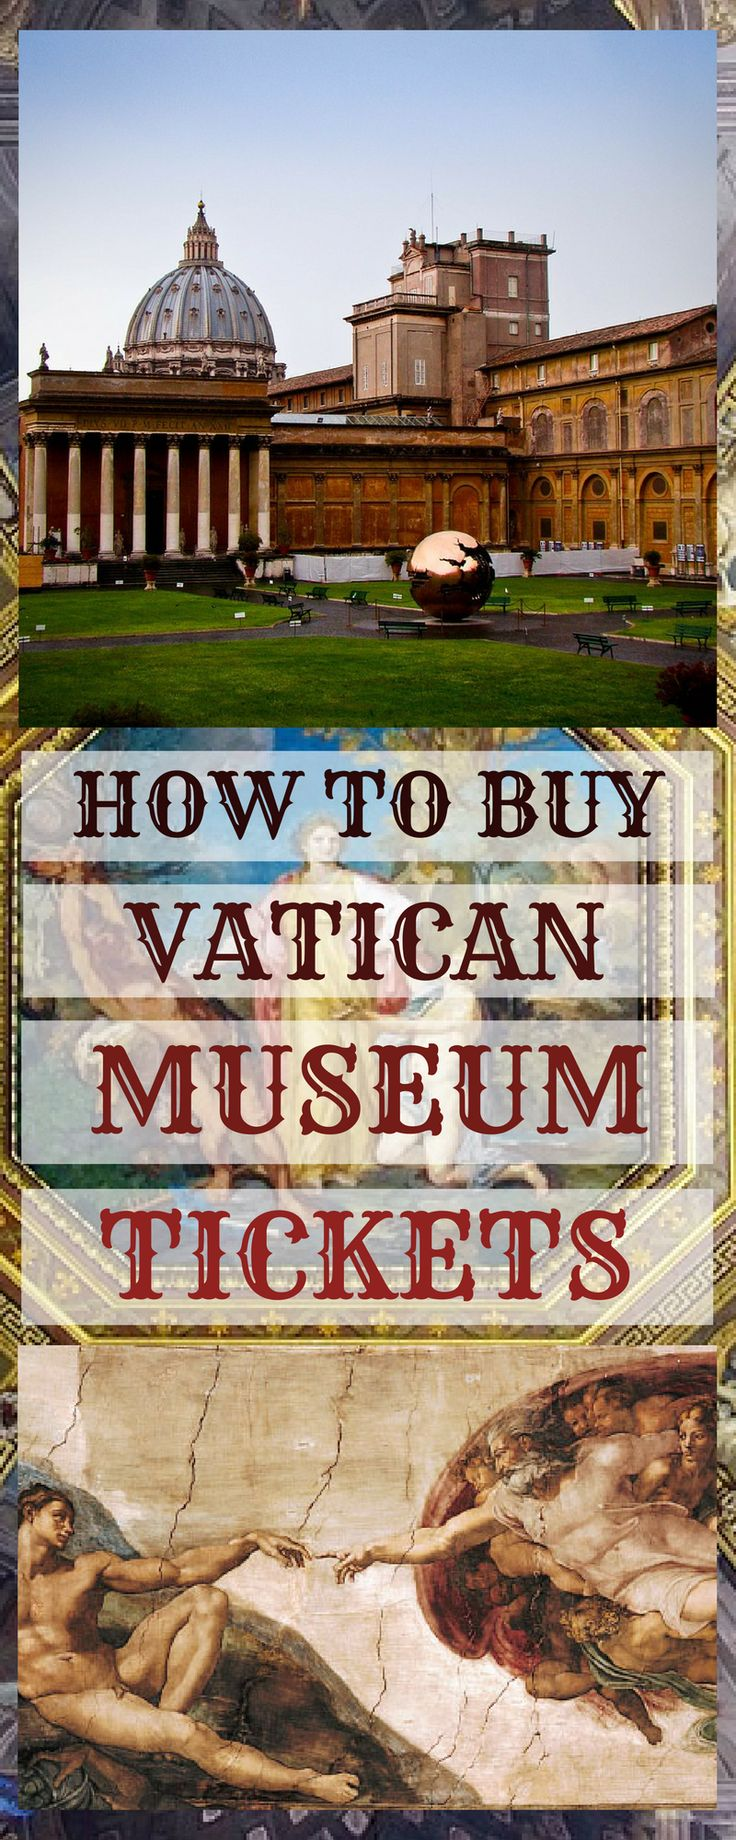 When it comes to Rome's best known attractions, nothing can beat the famous Vatican City with it's museums and cathedrals. In this article - Vatican Museum tips and ticket advice - how to get cheapest tickets, skip the line and access Saint Peter's Cathedral without queue